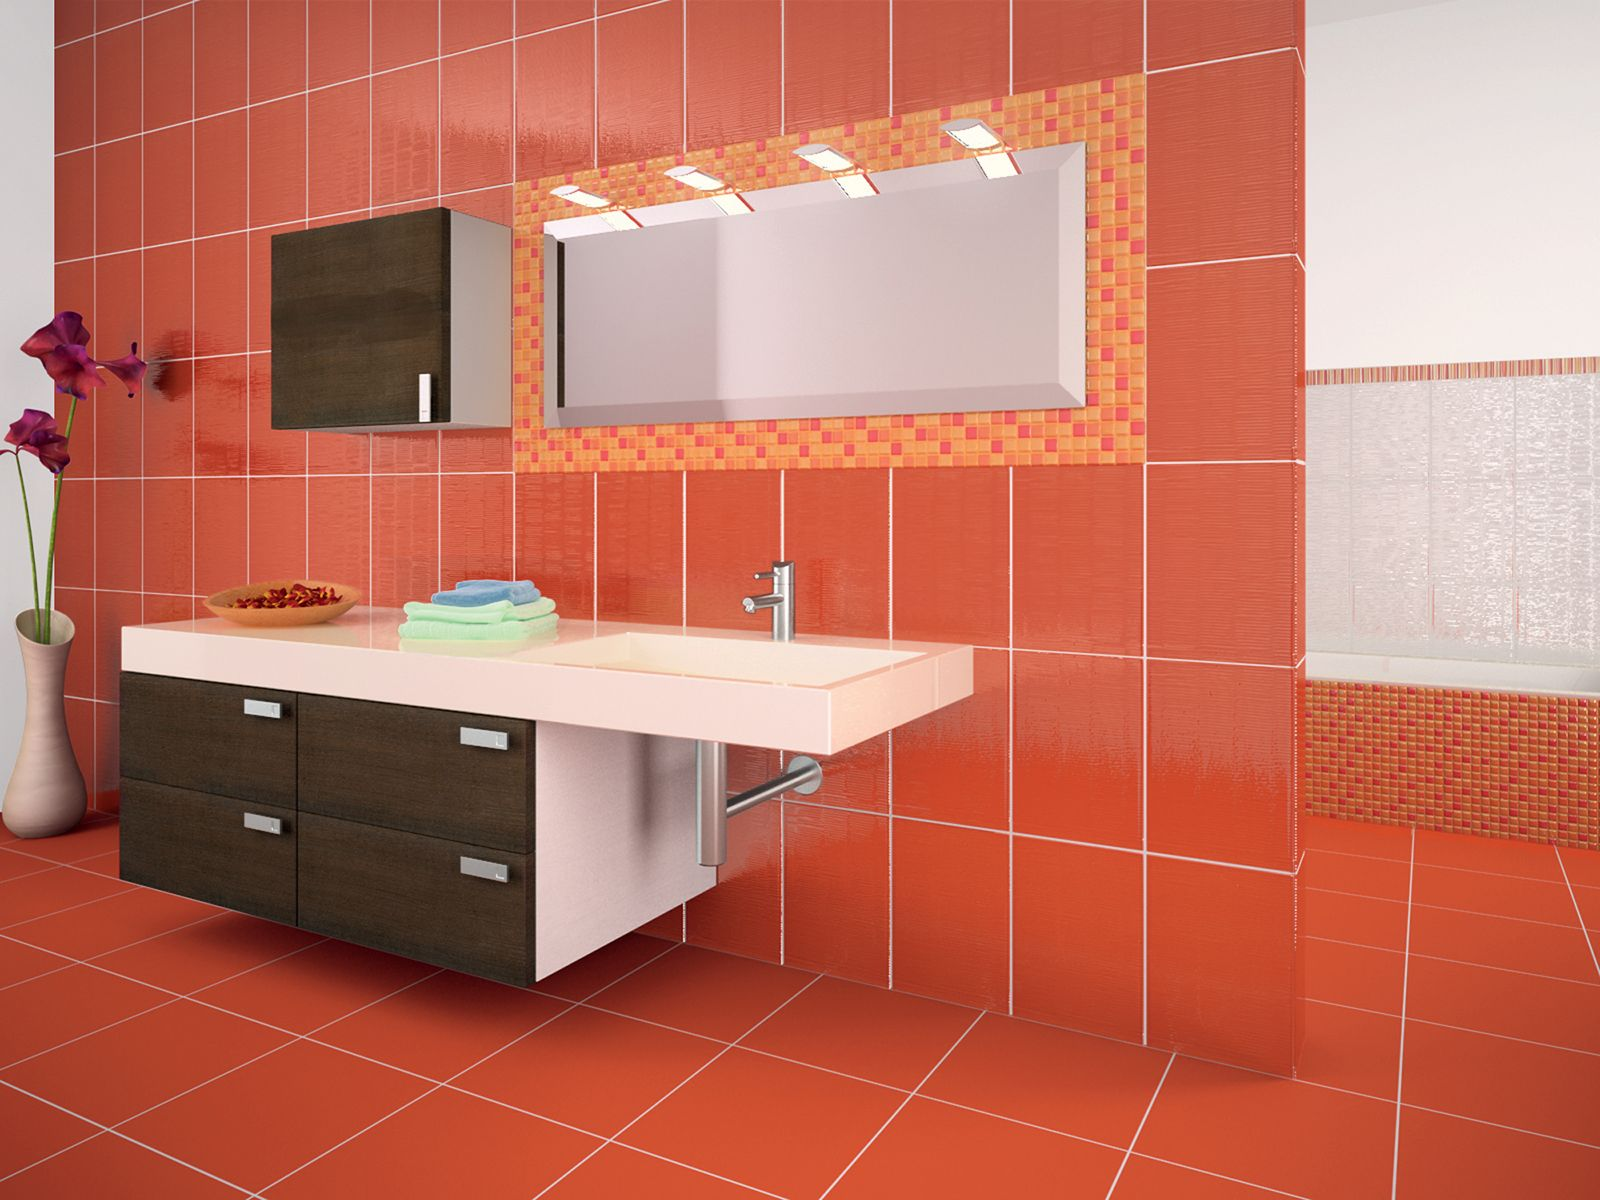 no 1472 matching wall and floor tiles create a stunning